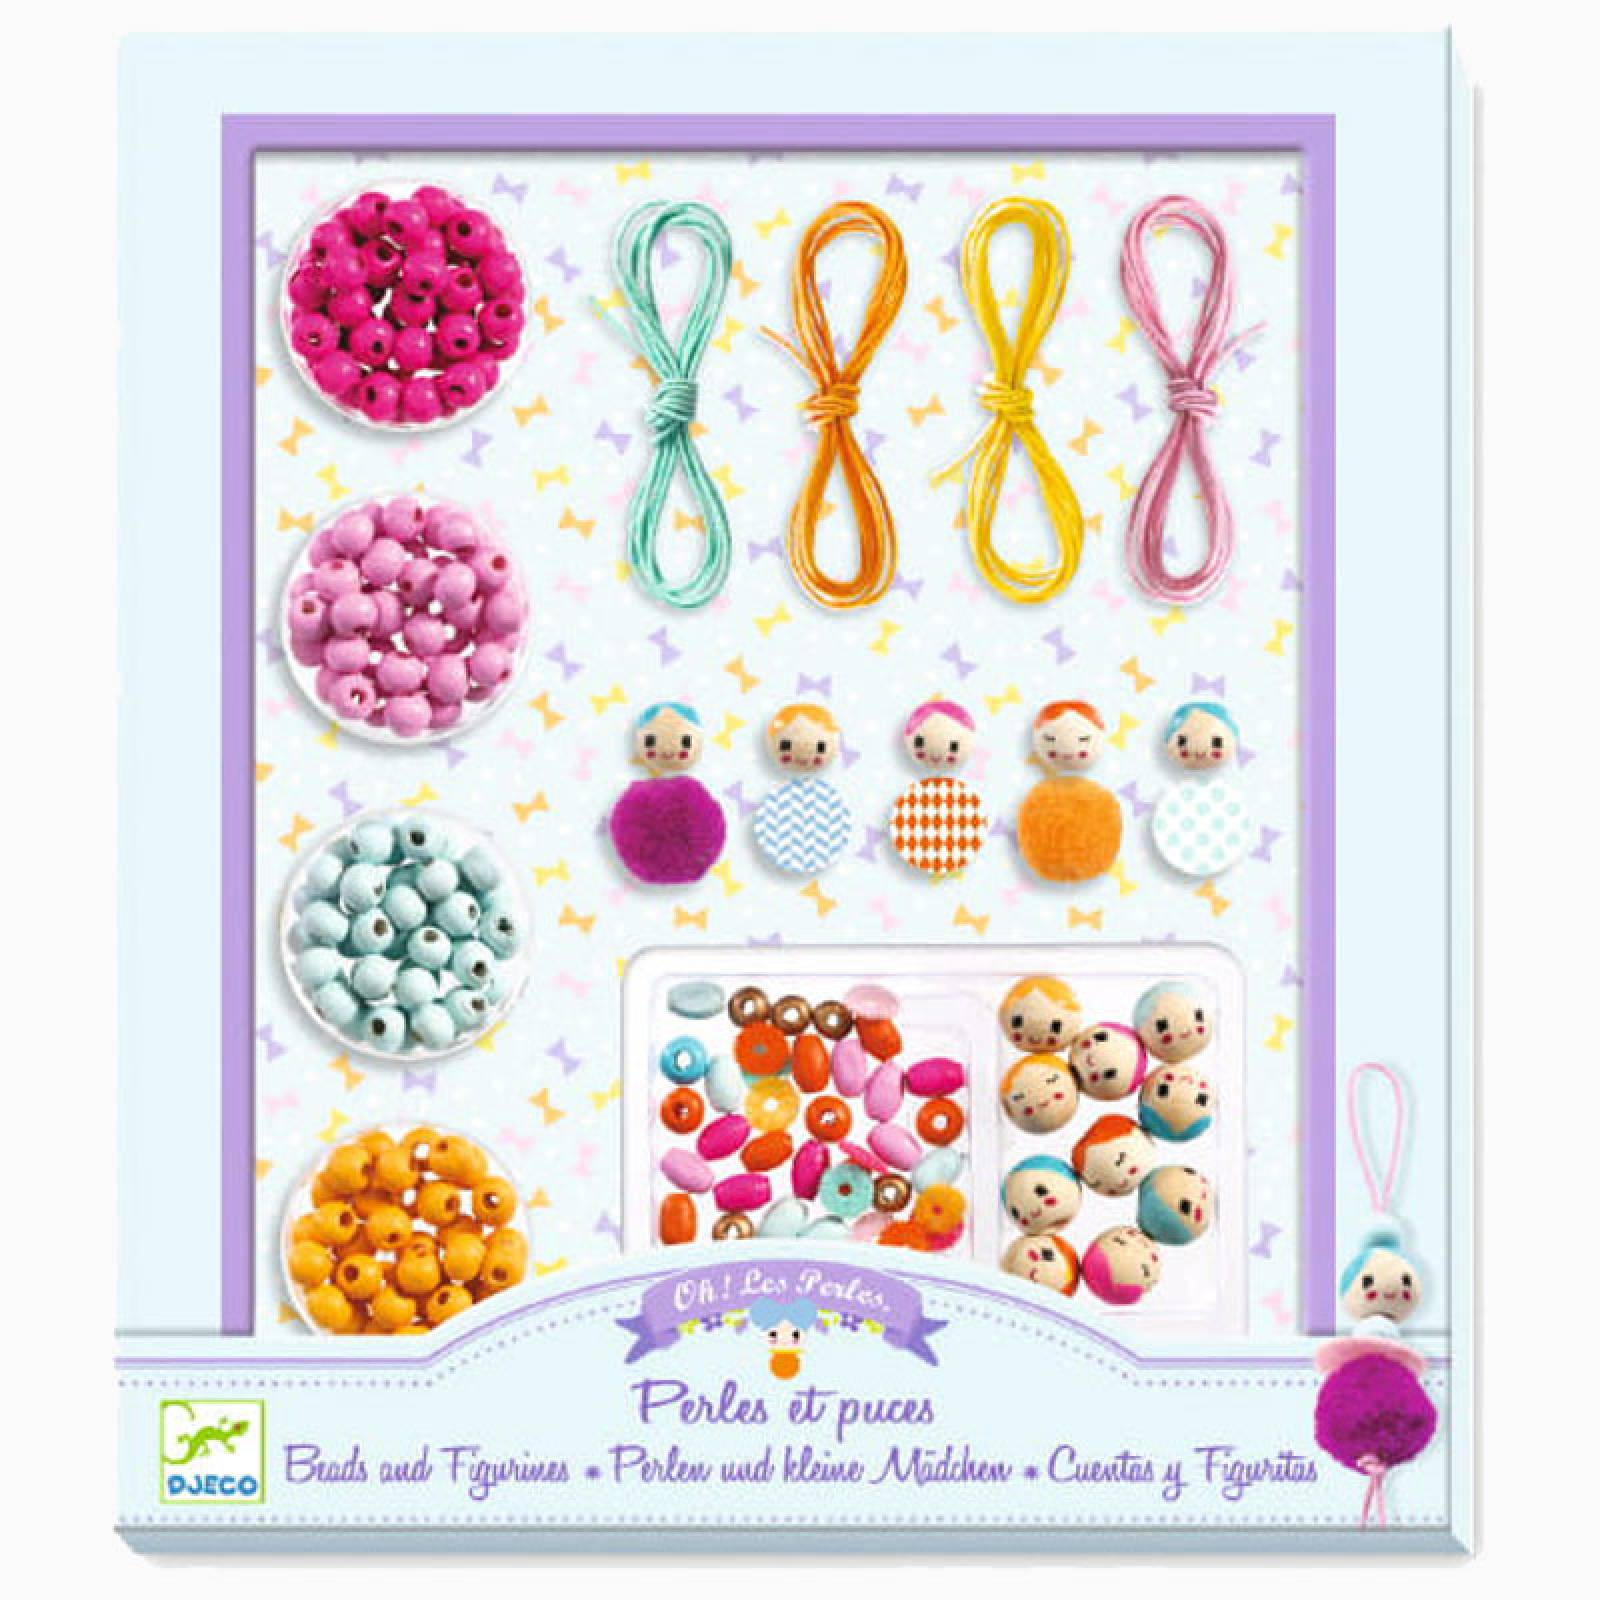 Beads And Figures Jewellery Kit 8+ thumbnails